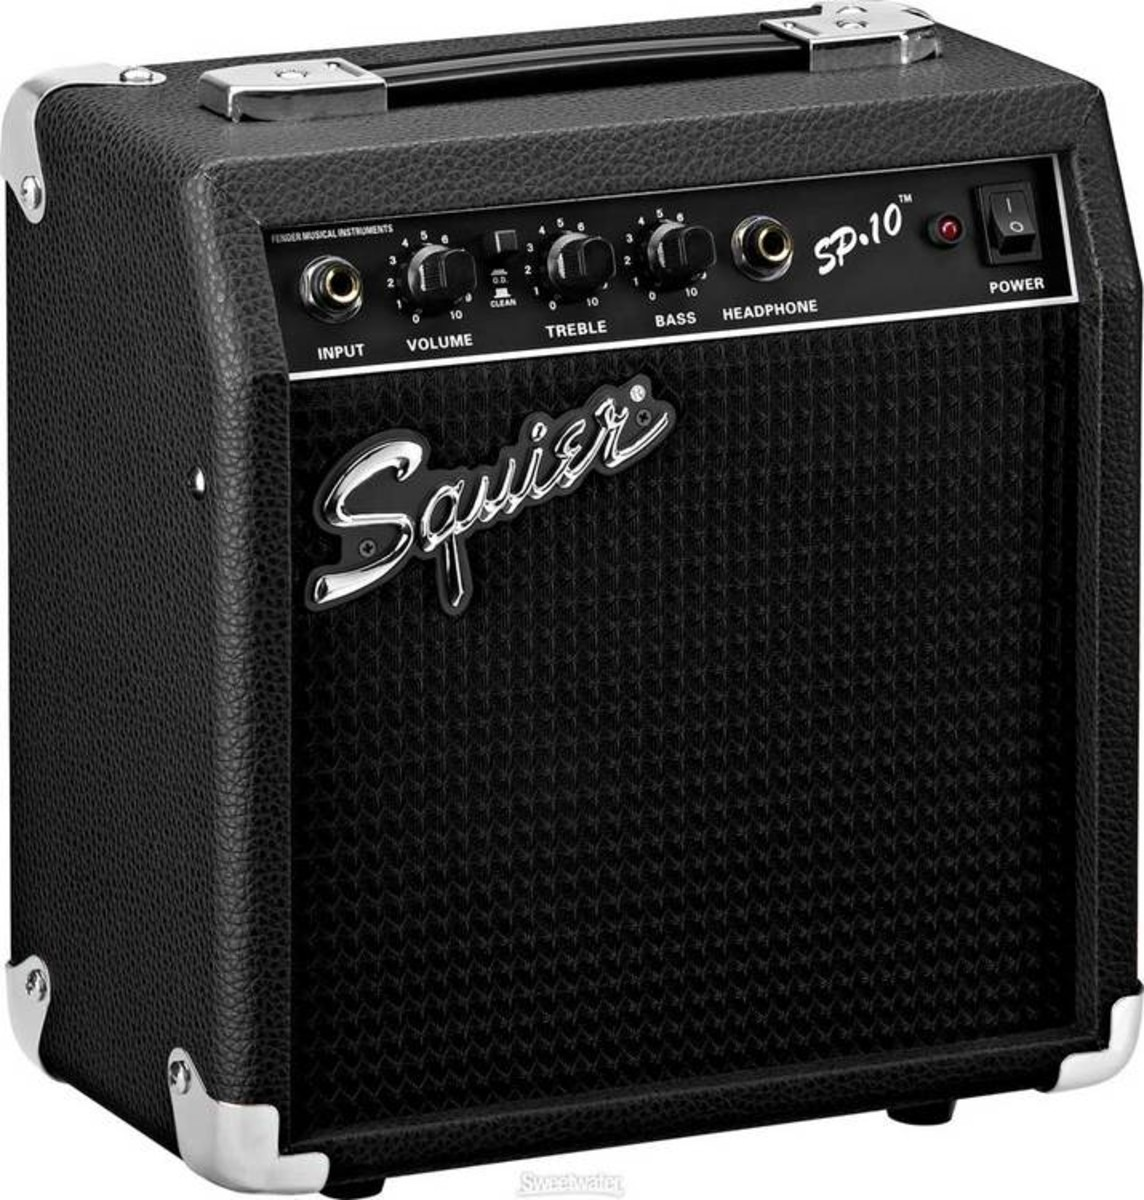 squier by fender se special strat sp10 amp pack black at gear4music. Black Bedroom Furniture Sets. Home Design Ideas